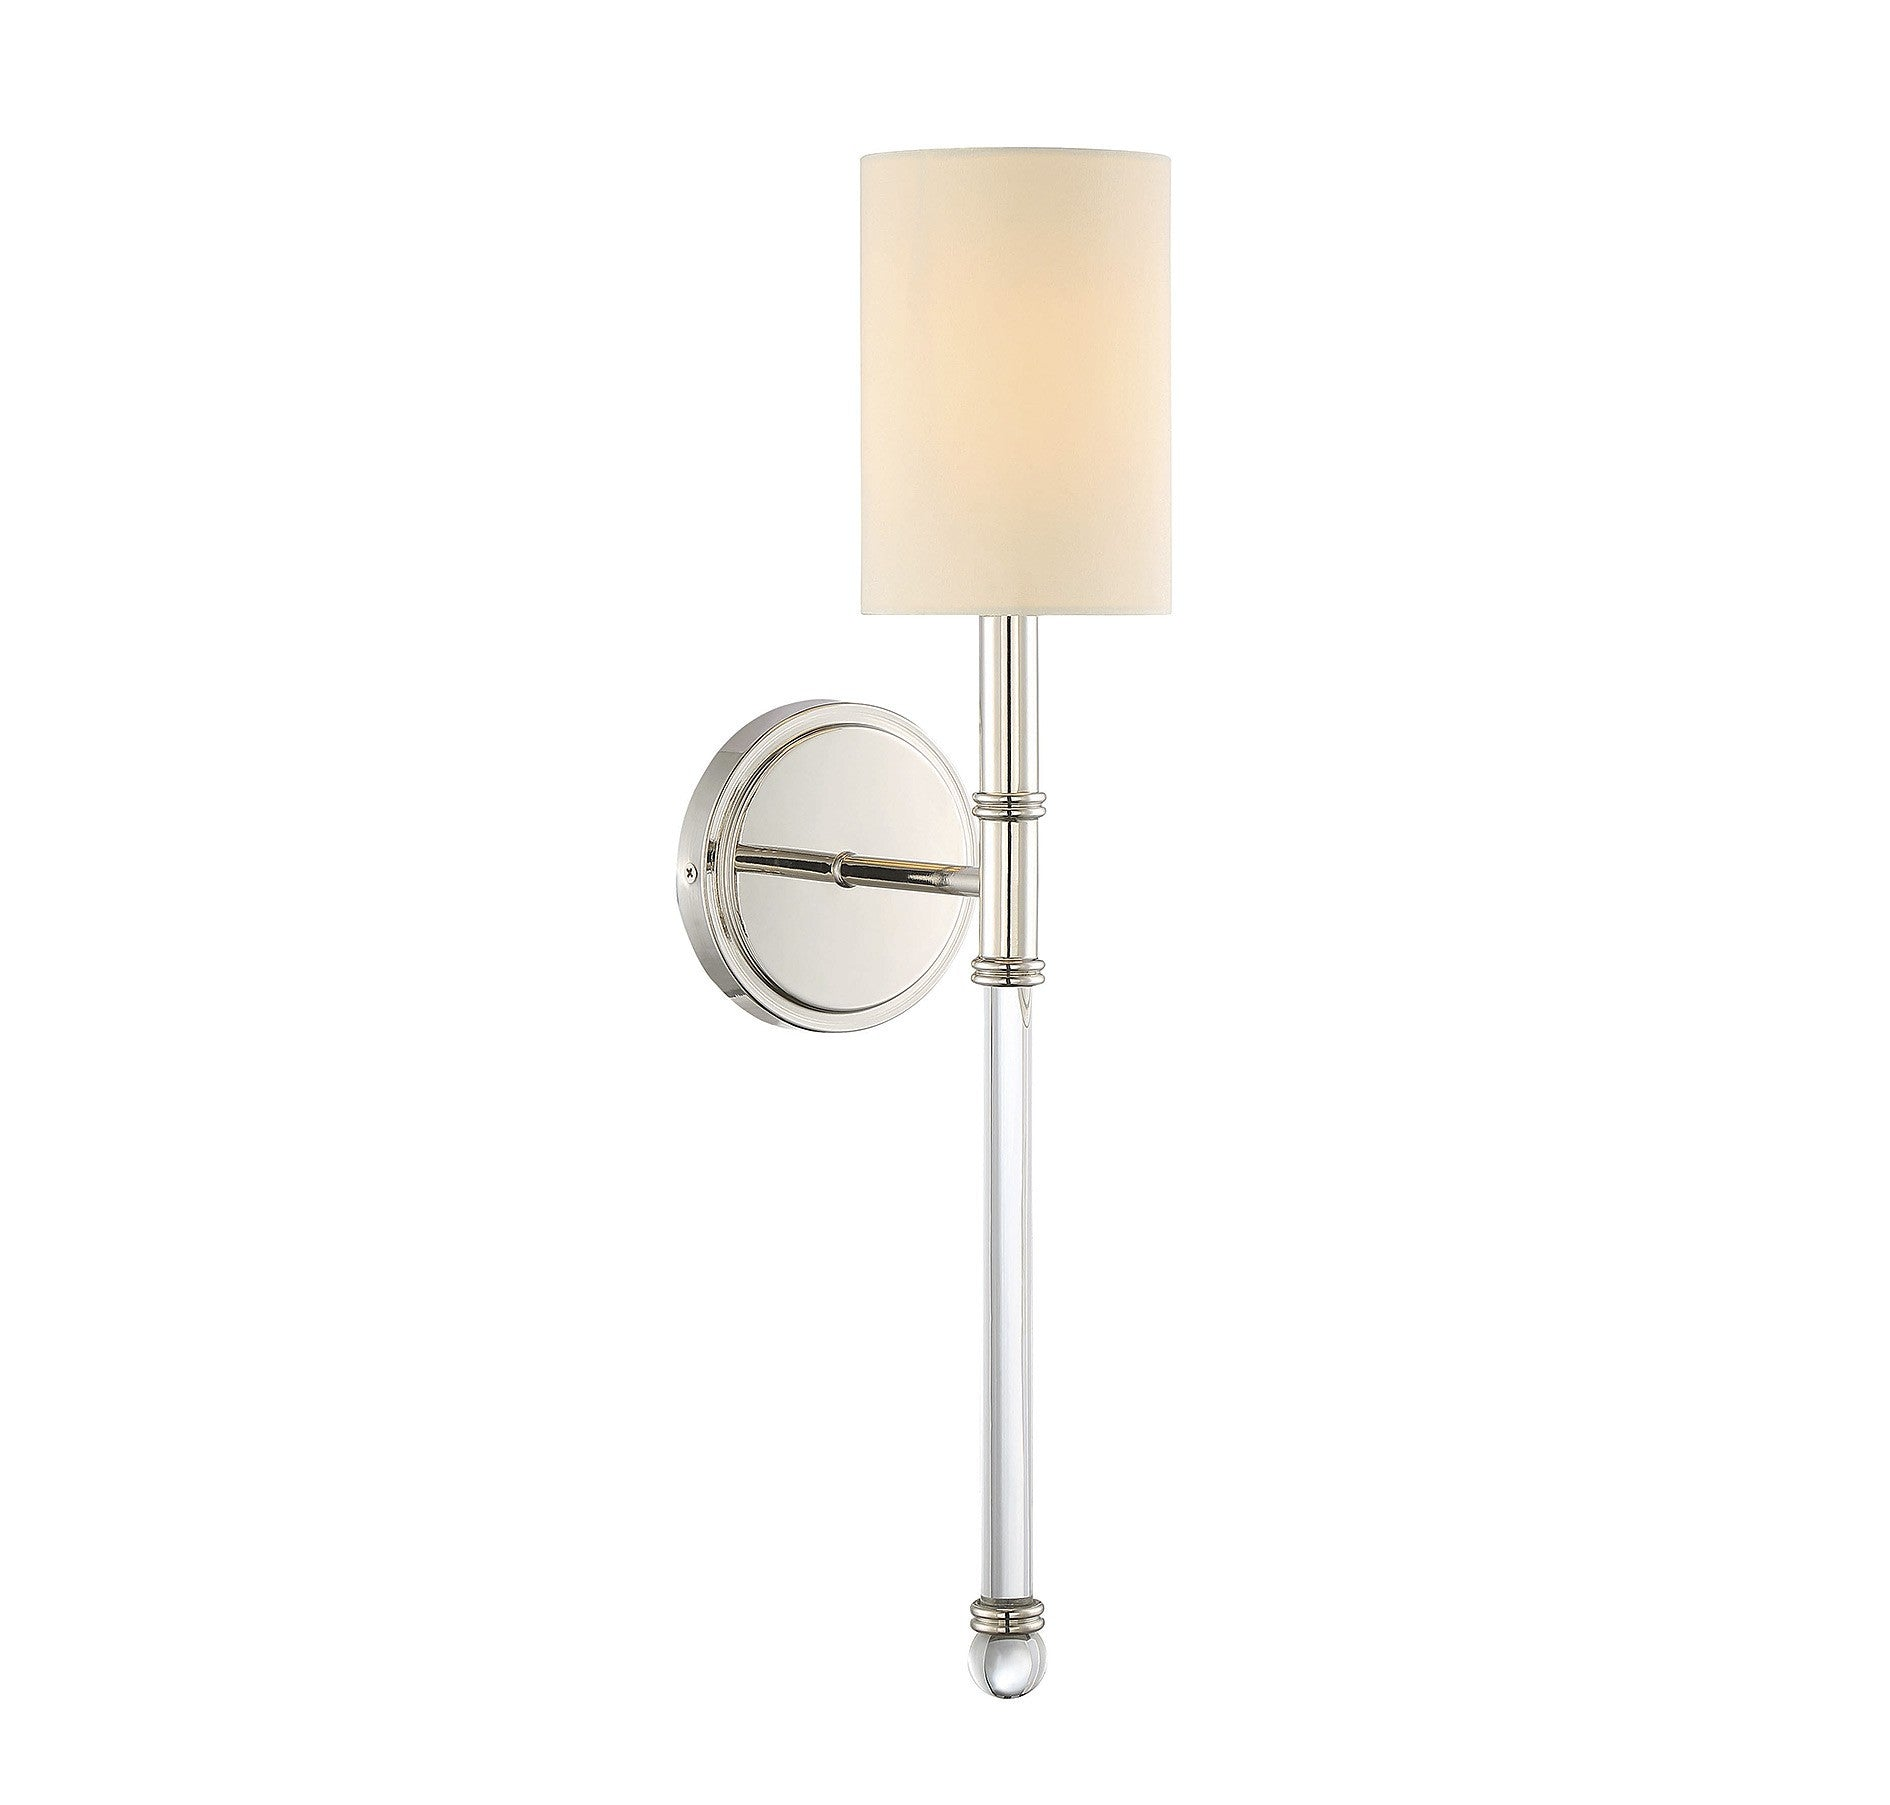 Savoy House Fremont 1 Light Wall Sconce in Polished Nickel and Soft White Fabric Shade 9-101-1-109